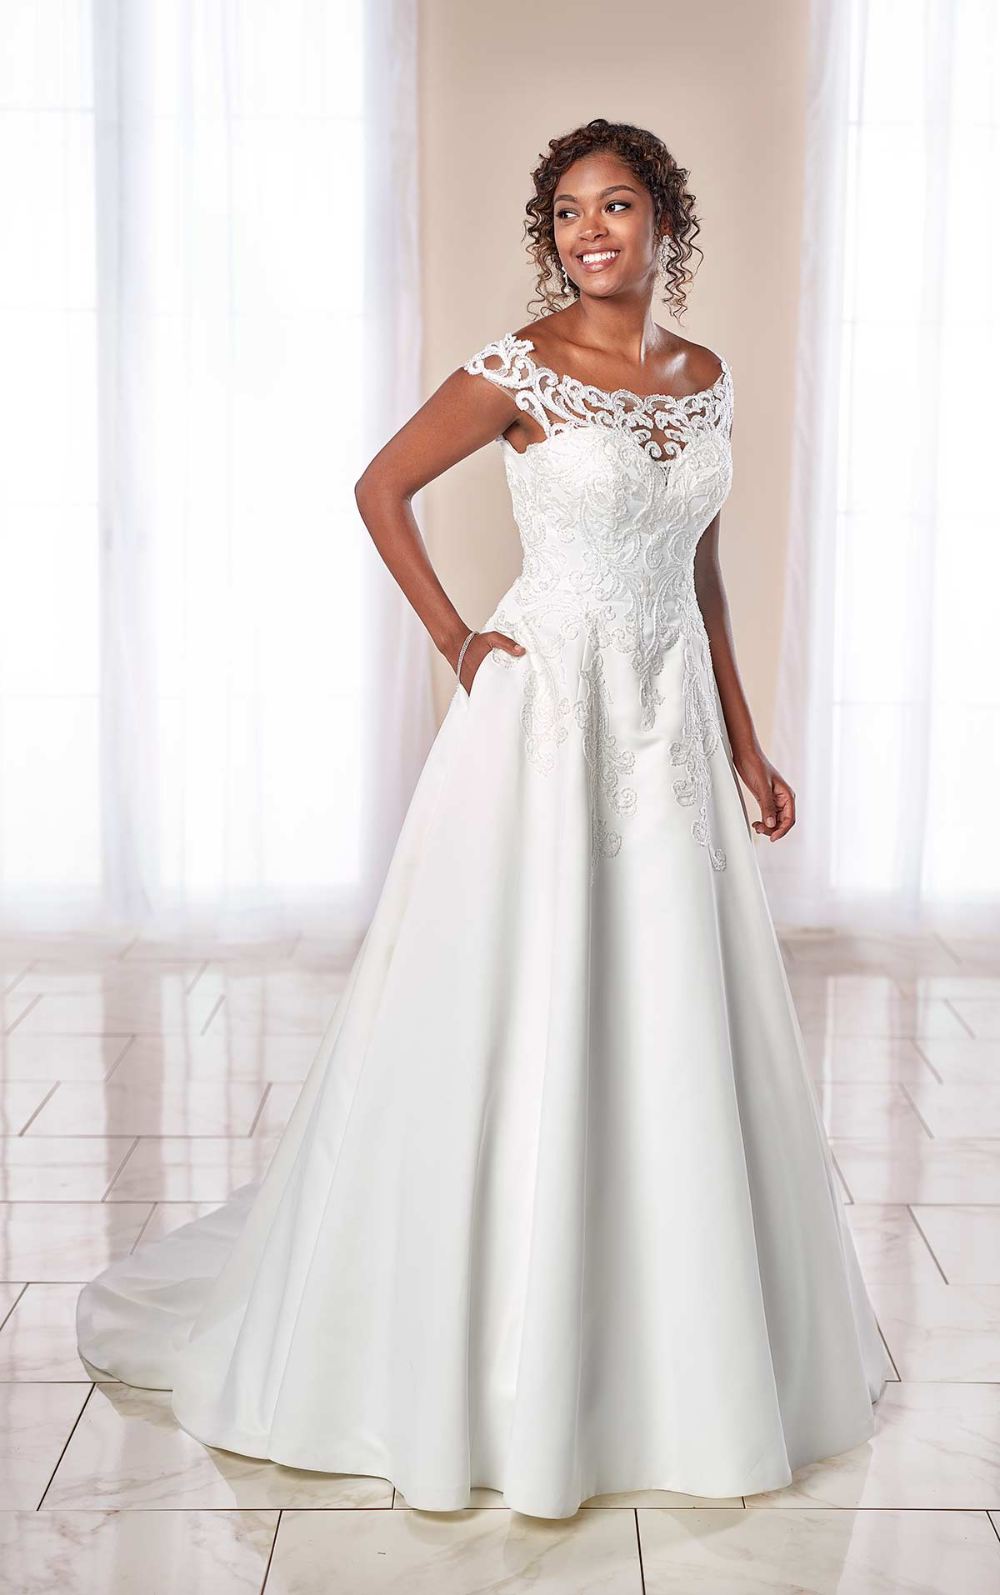 Modern Lace A Line Wedding Gown With Pockets Stella York Wedding Dresses Stella York Wedding Dress York Wedding Dress Stella York Bridal [ 1595 x 1000 Pixel ]